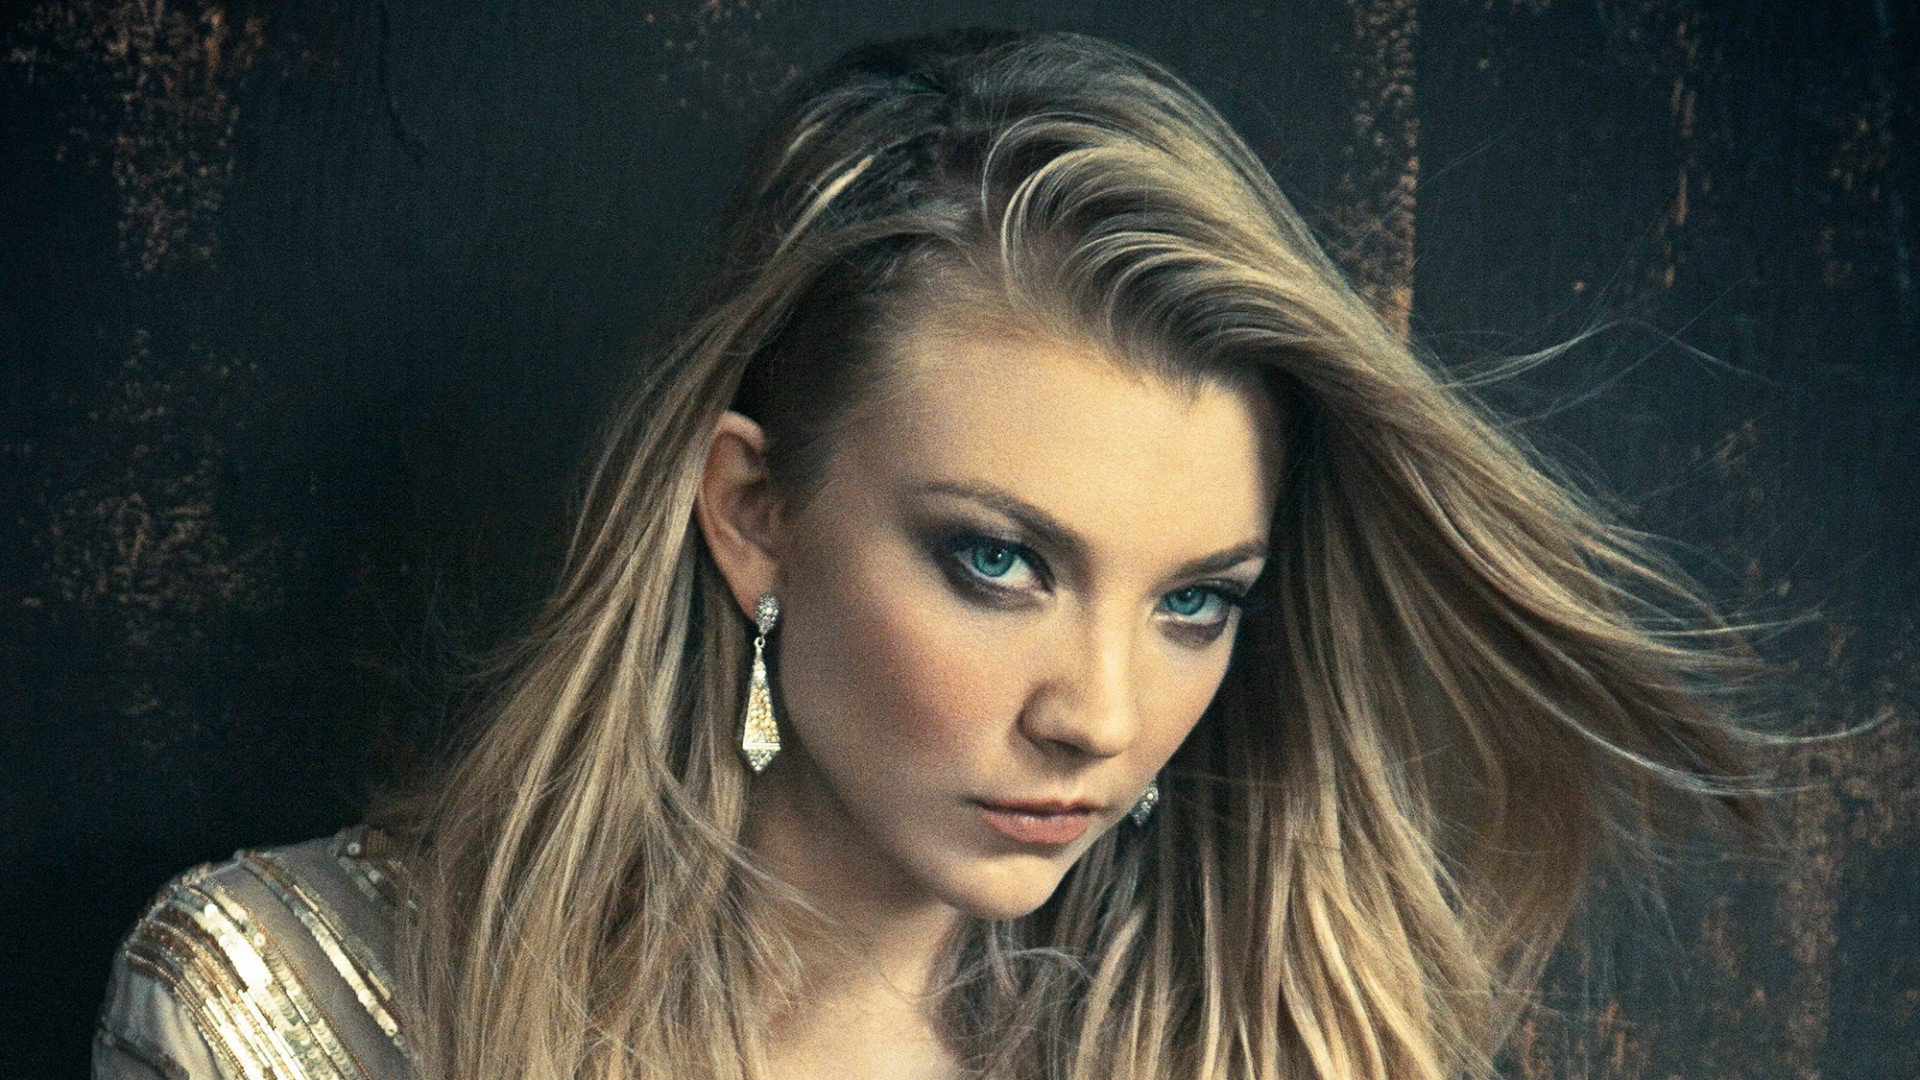 Natalie Dormer Face, HD Celebrities, 4k Wallpapers, Images ...